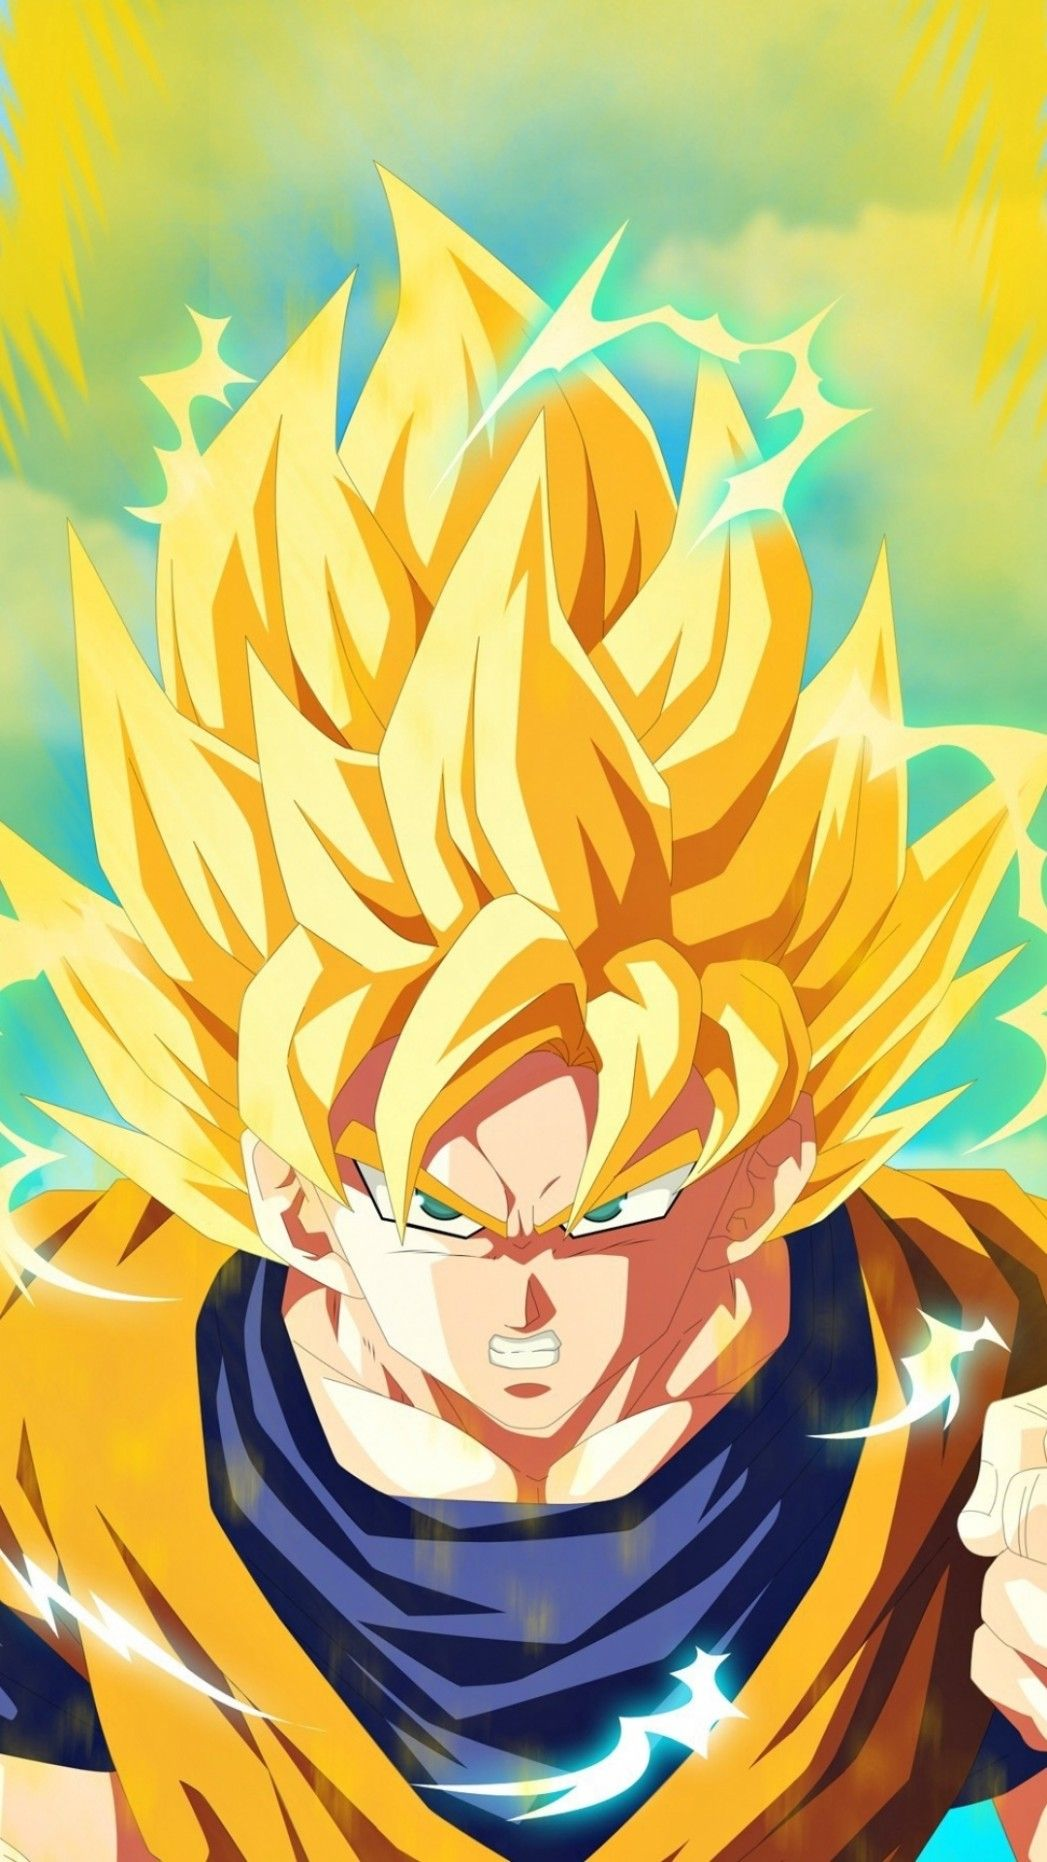 Dragon Ball Z iPhone Wallpapers   Top Dragon Ball Z iPhone 1047x1862